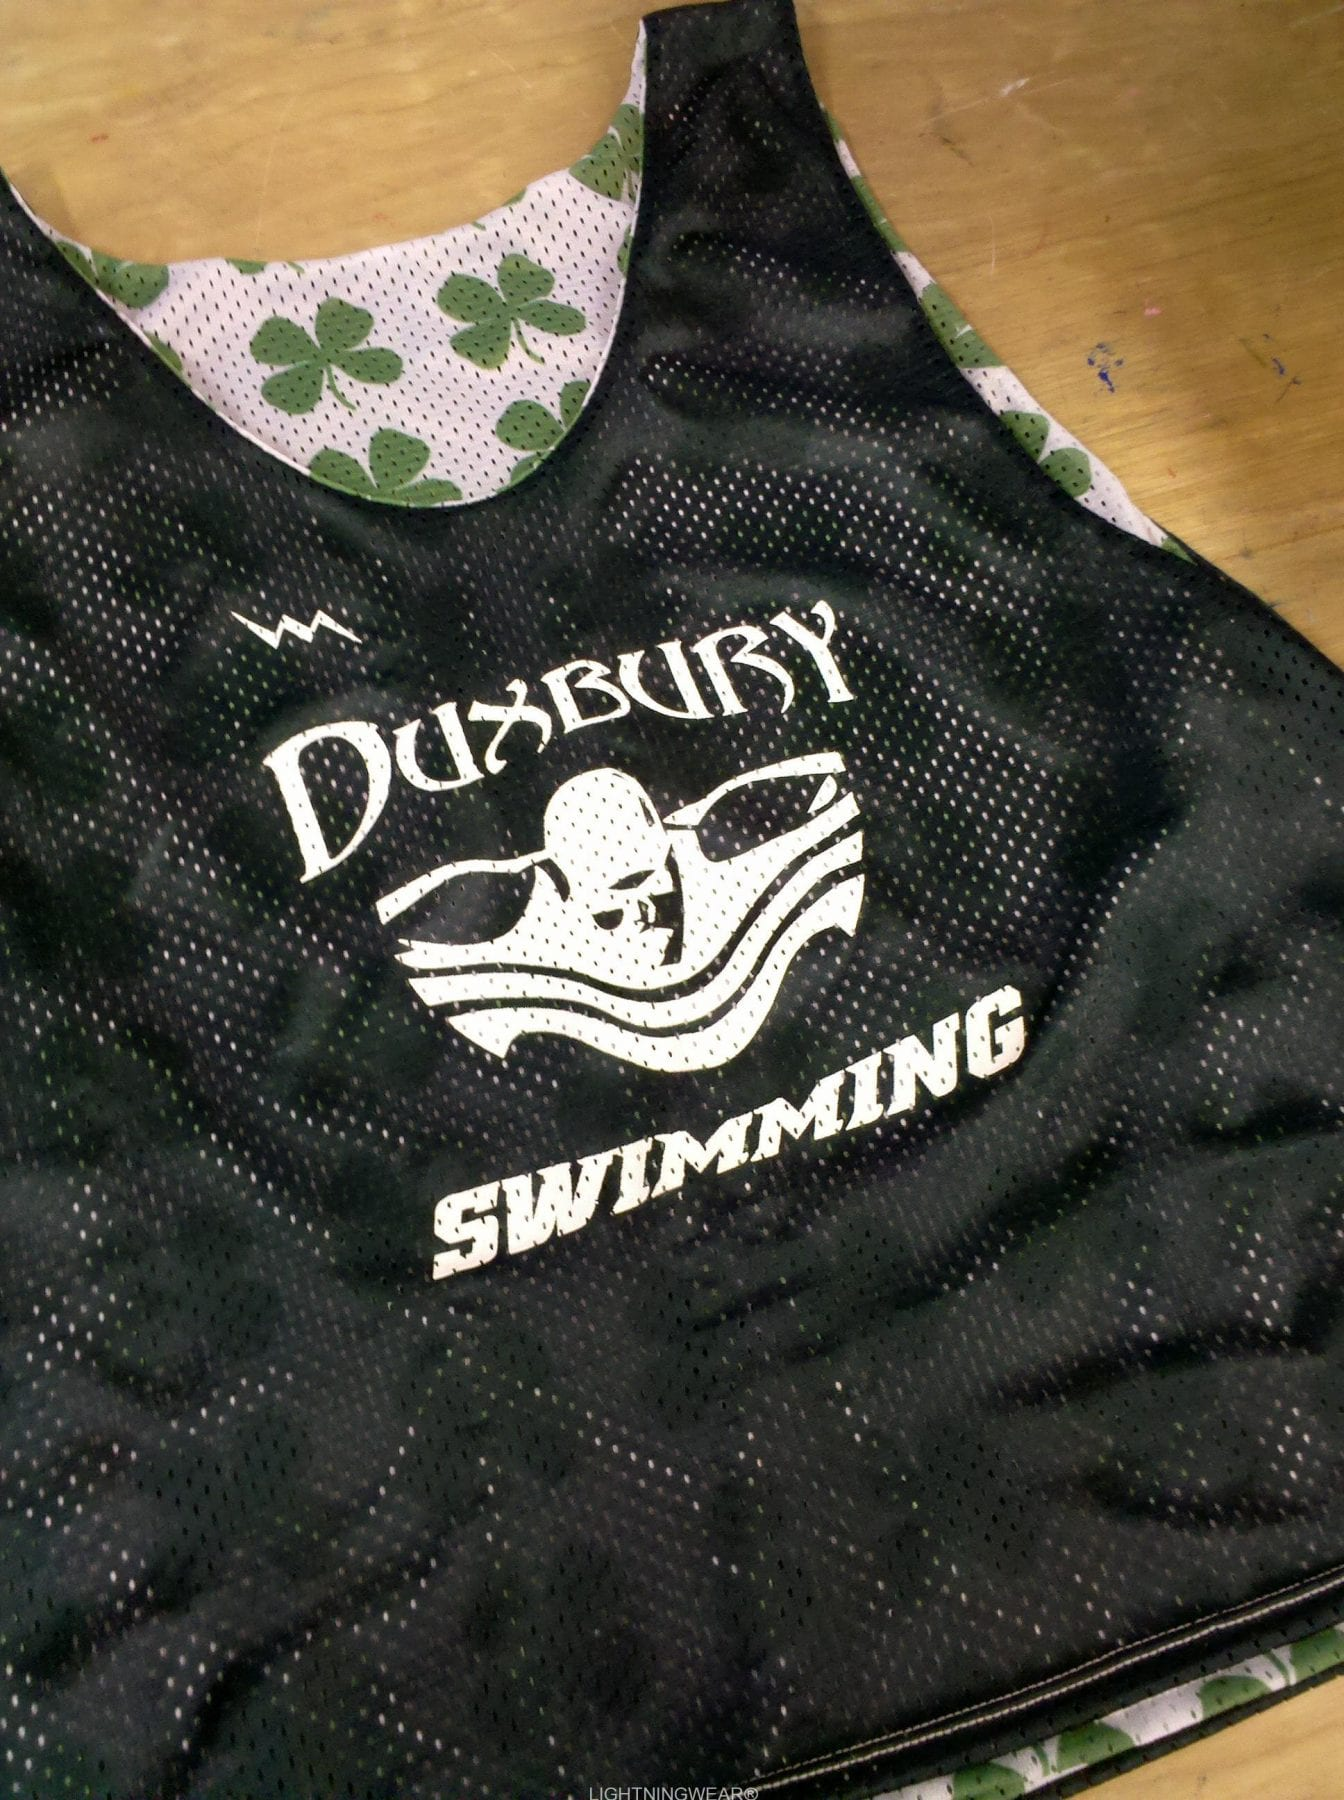 duxbury swimming pinnies